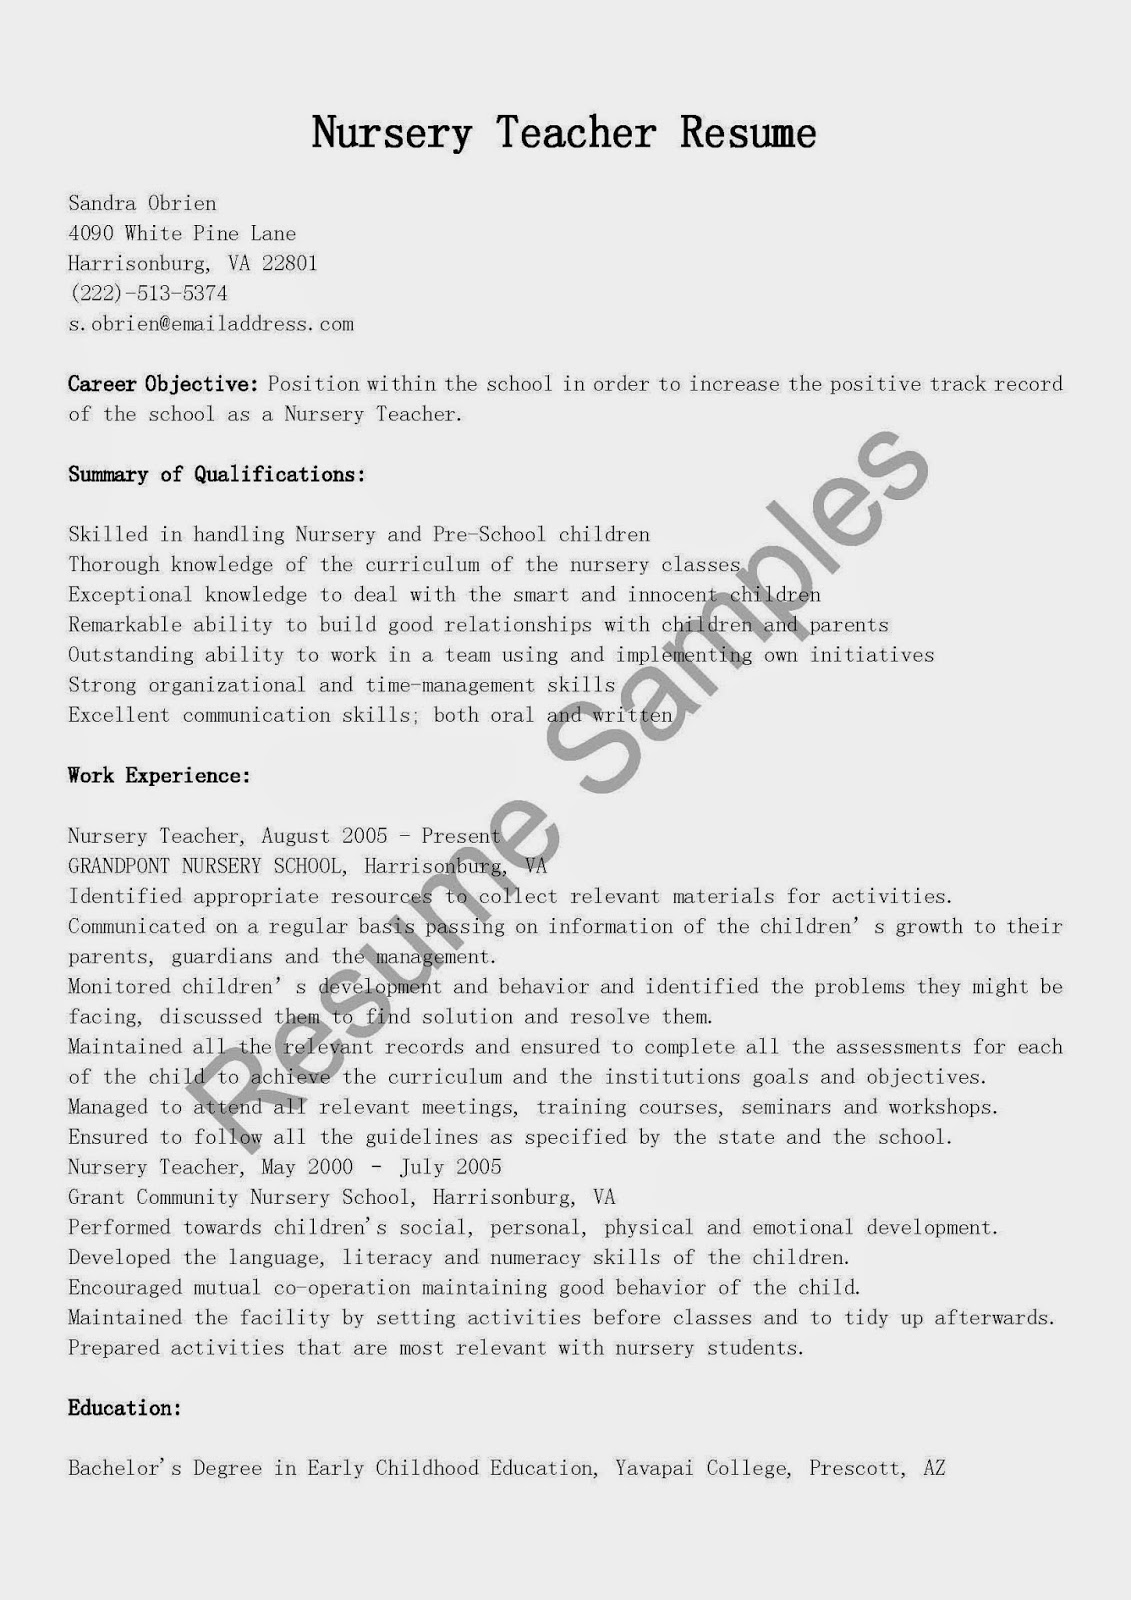 Elegant Resume Cover Letter Examples Dental Hygiene Best Resume Template Berathen  Com Retail Objective Resume Resume Objective  Time Management Resume